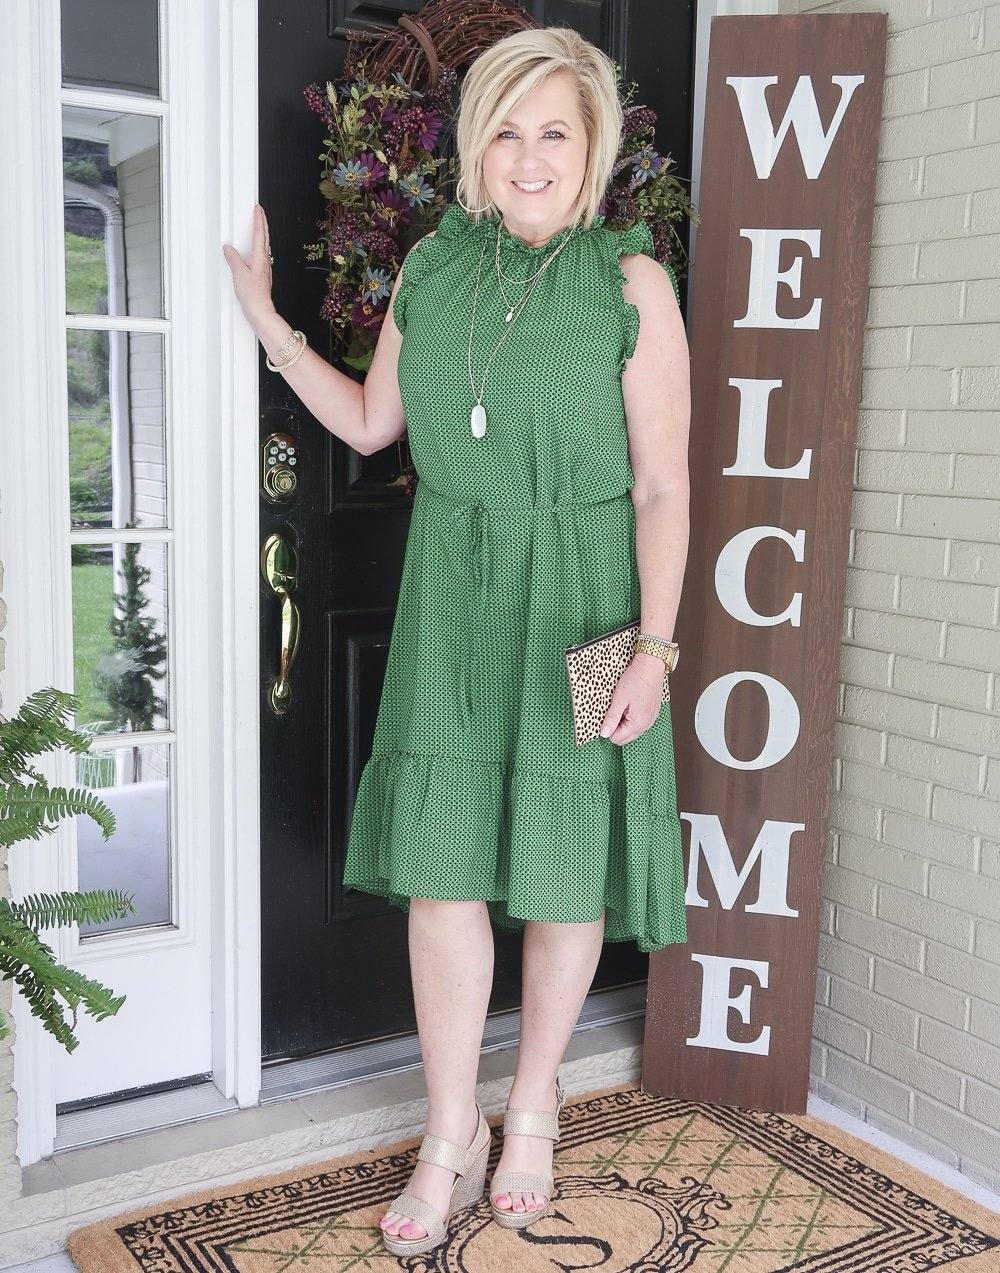 Fashion Blogger 50 Is Not Old is wearing a green polka dotted dress that has a high neck plus gold wedge shoes